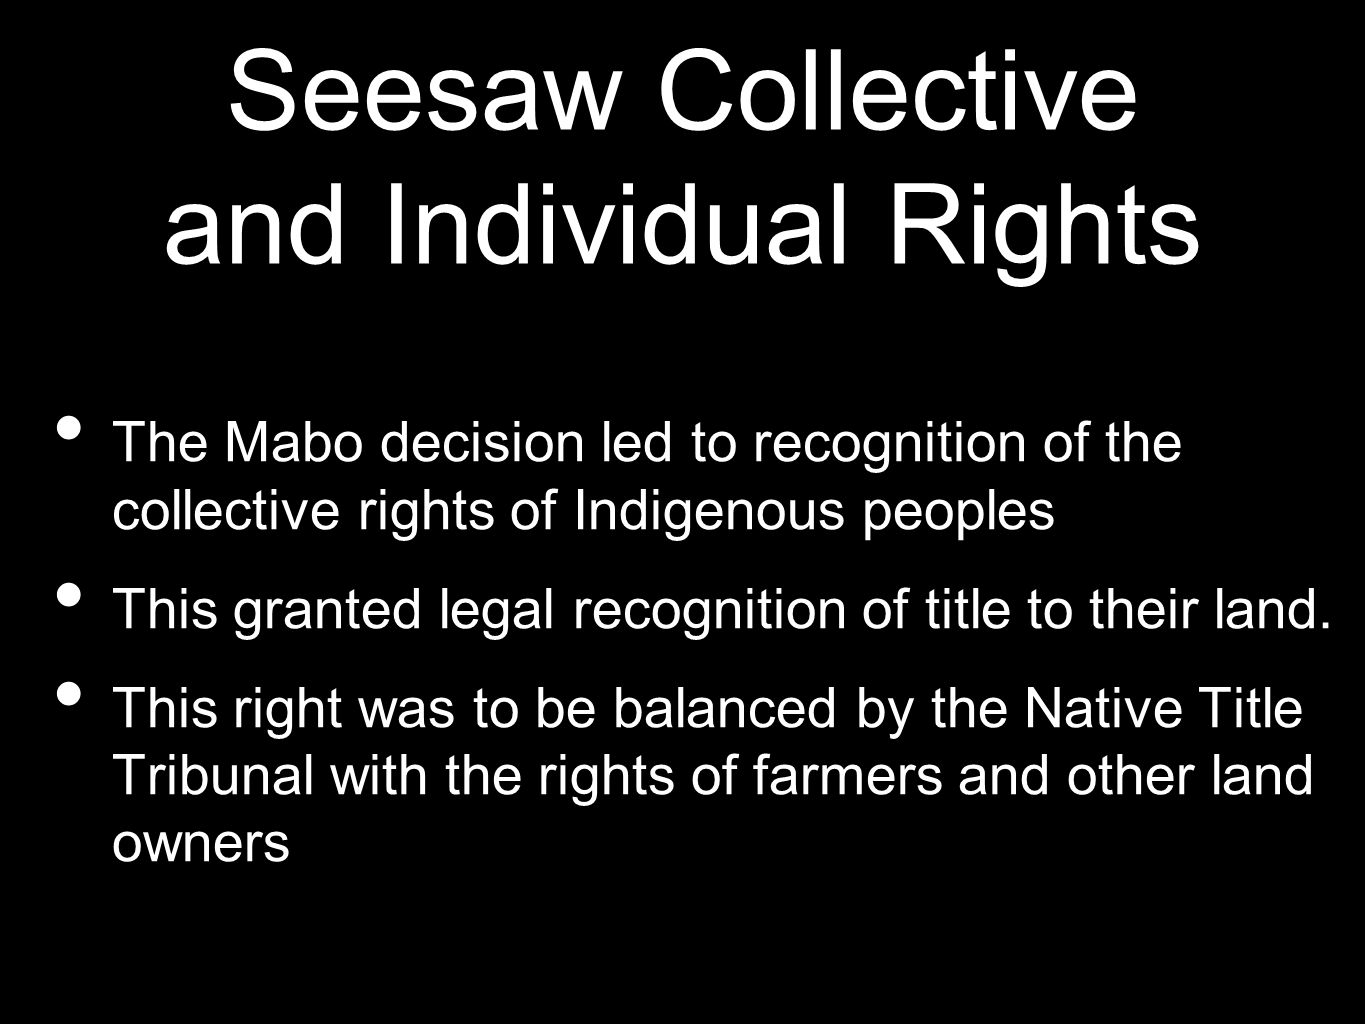 Seesaw Collective and Individual Rights